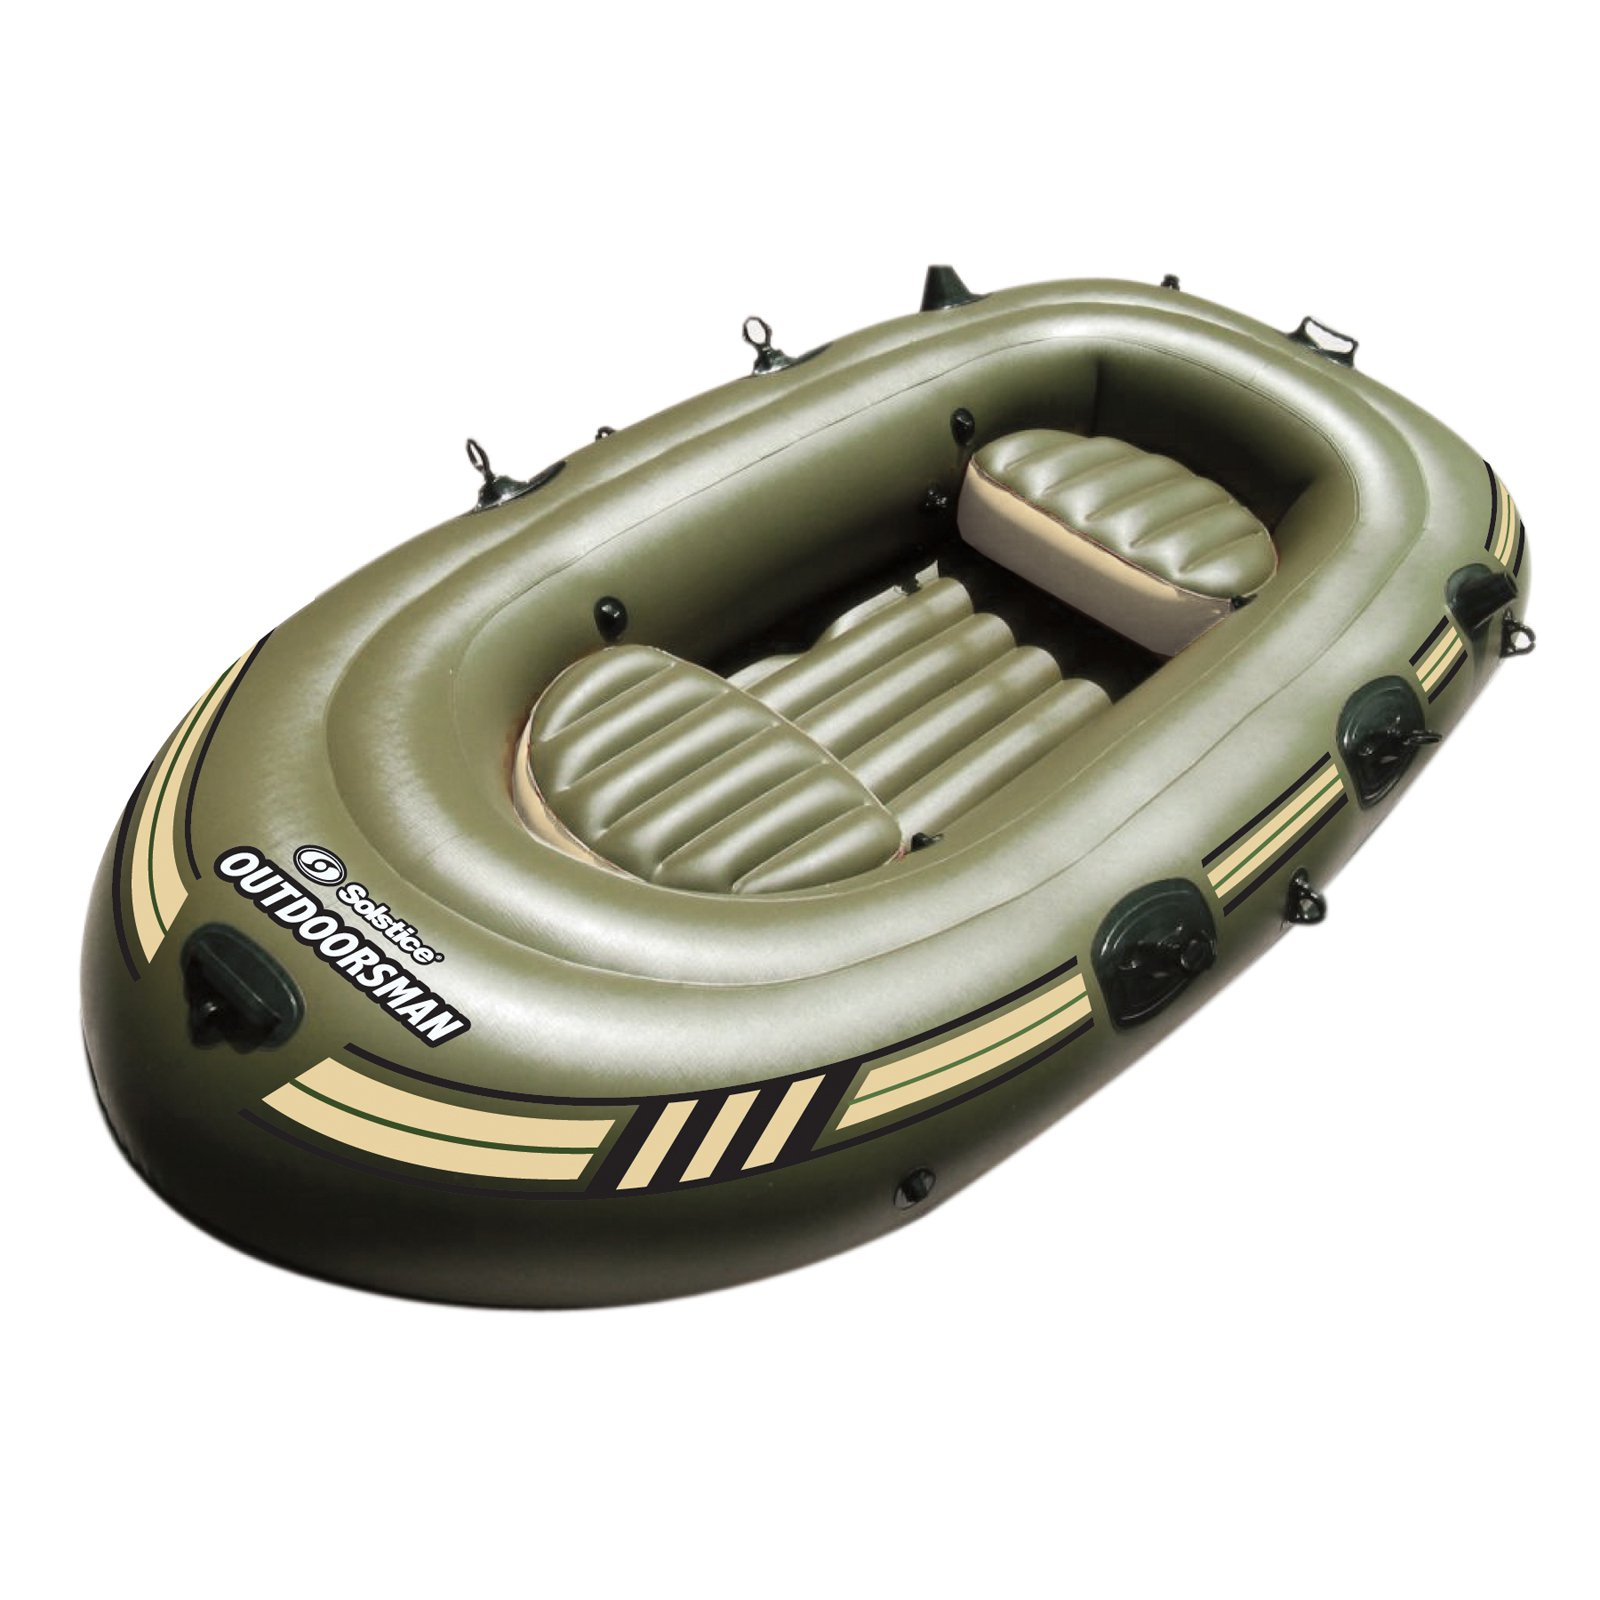 Solstice Outdoorsman 4-Person Inflatable Fishing Boat